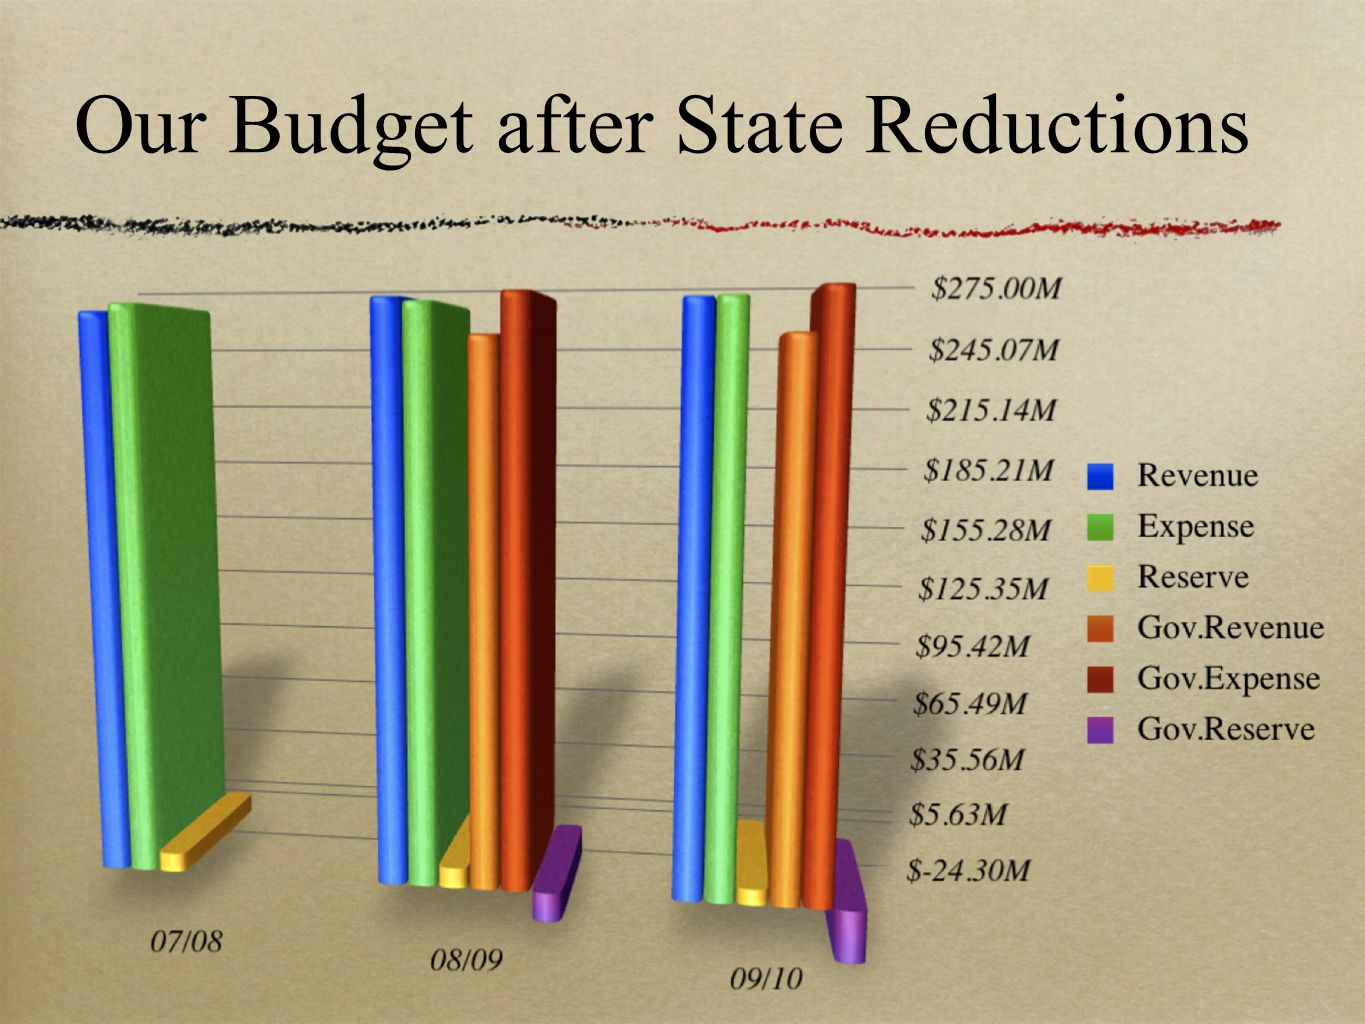 Our Budget after State Reductions